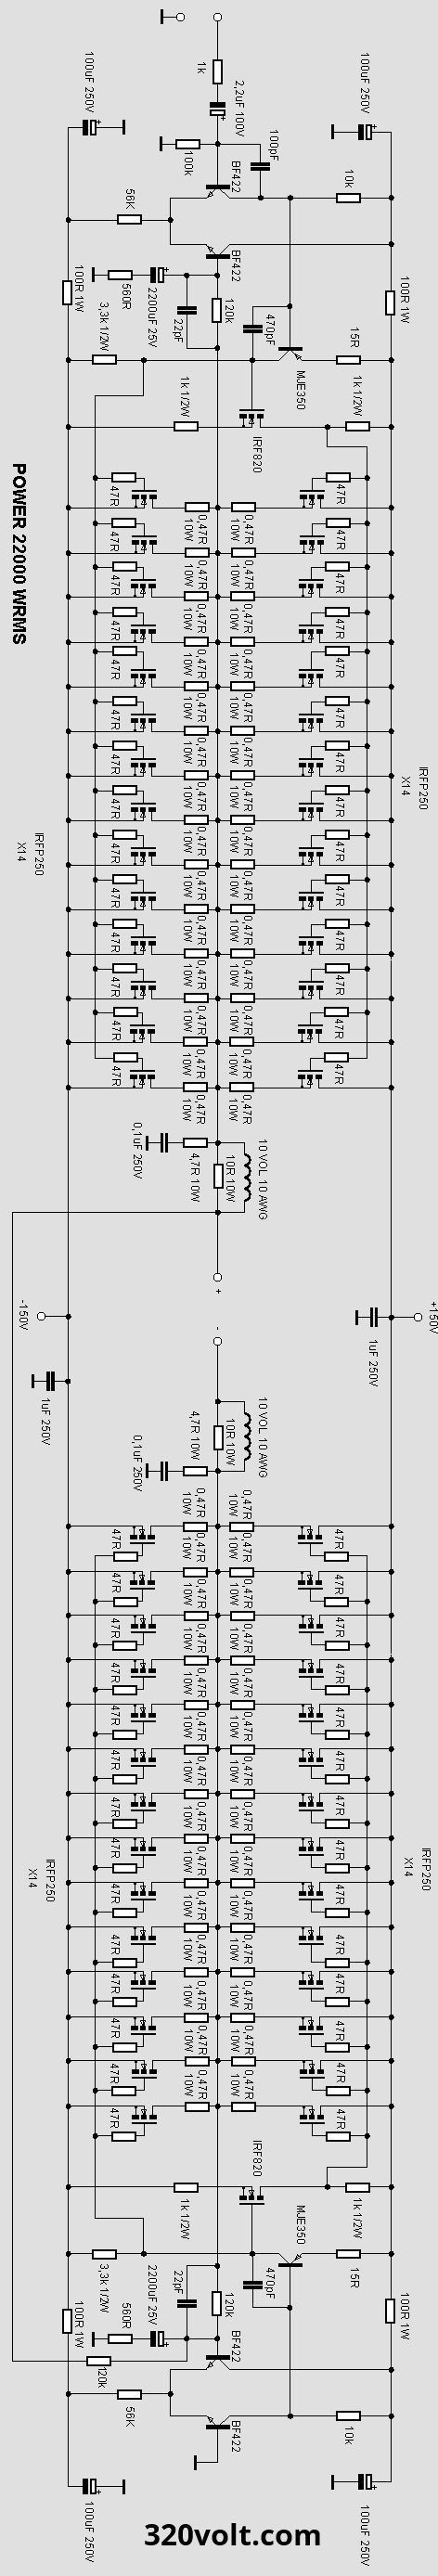 2000w audio amplifier circuit diagrams high power audio amplifier circuit